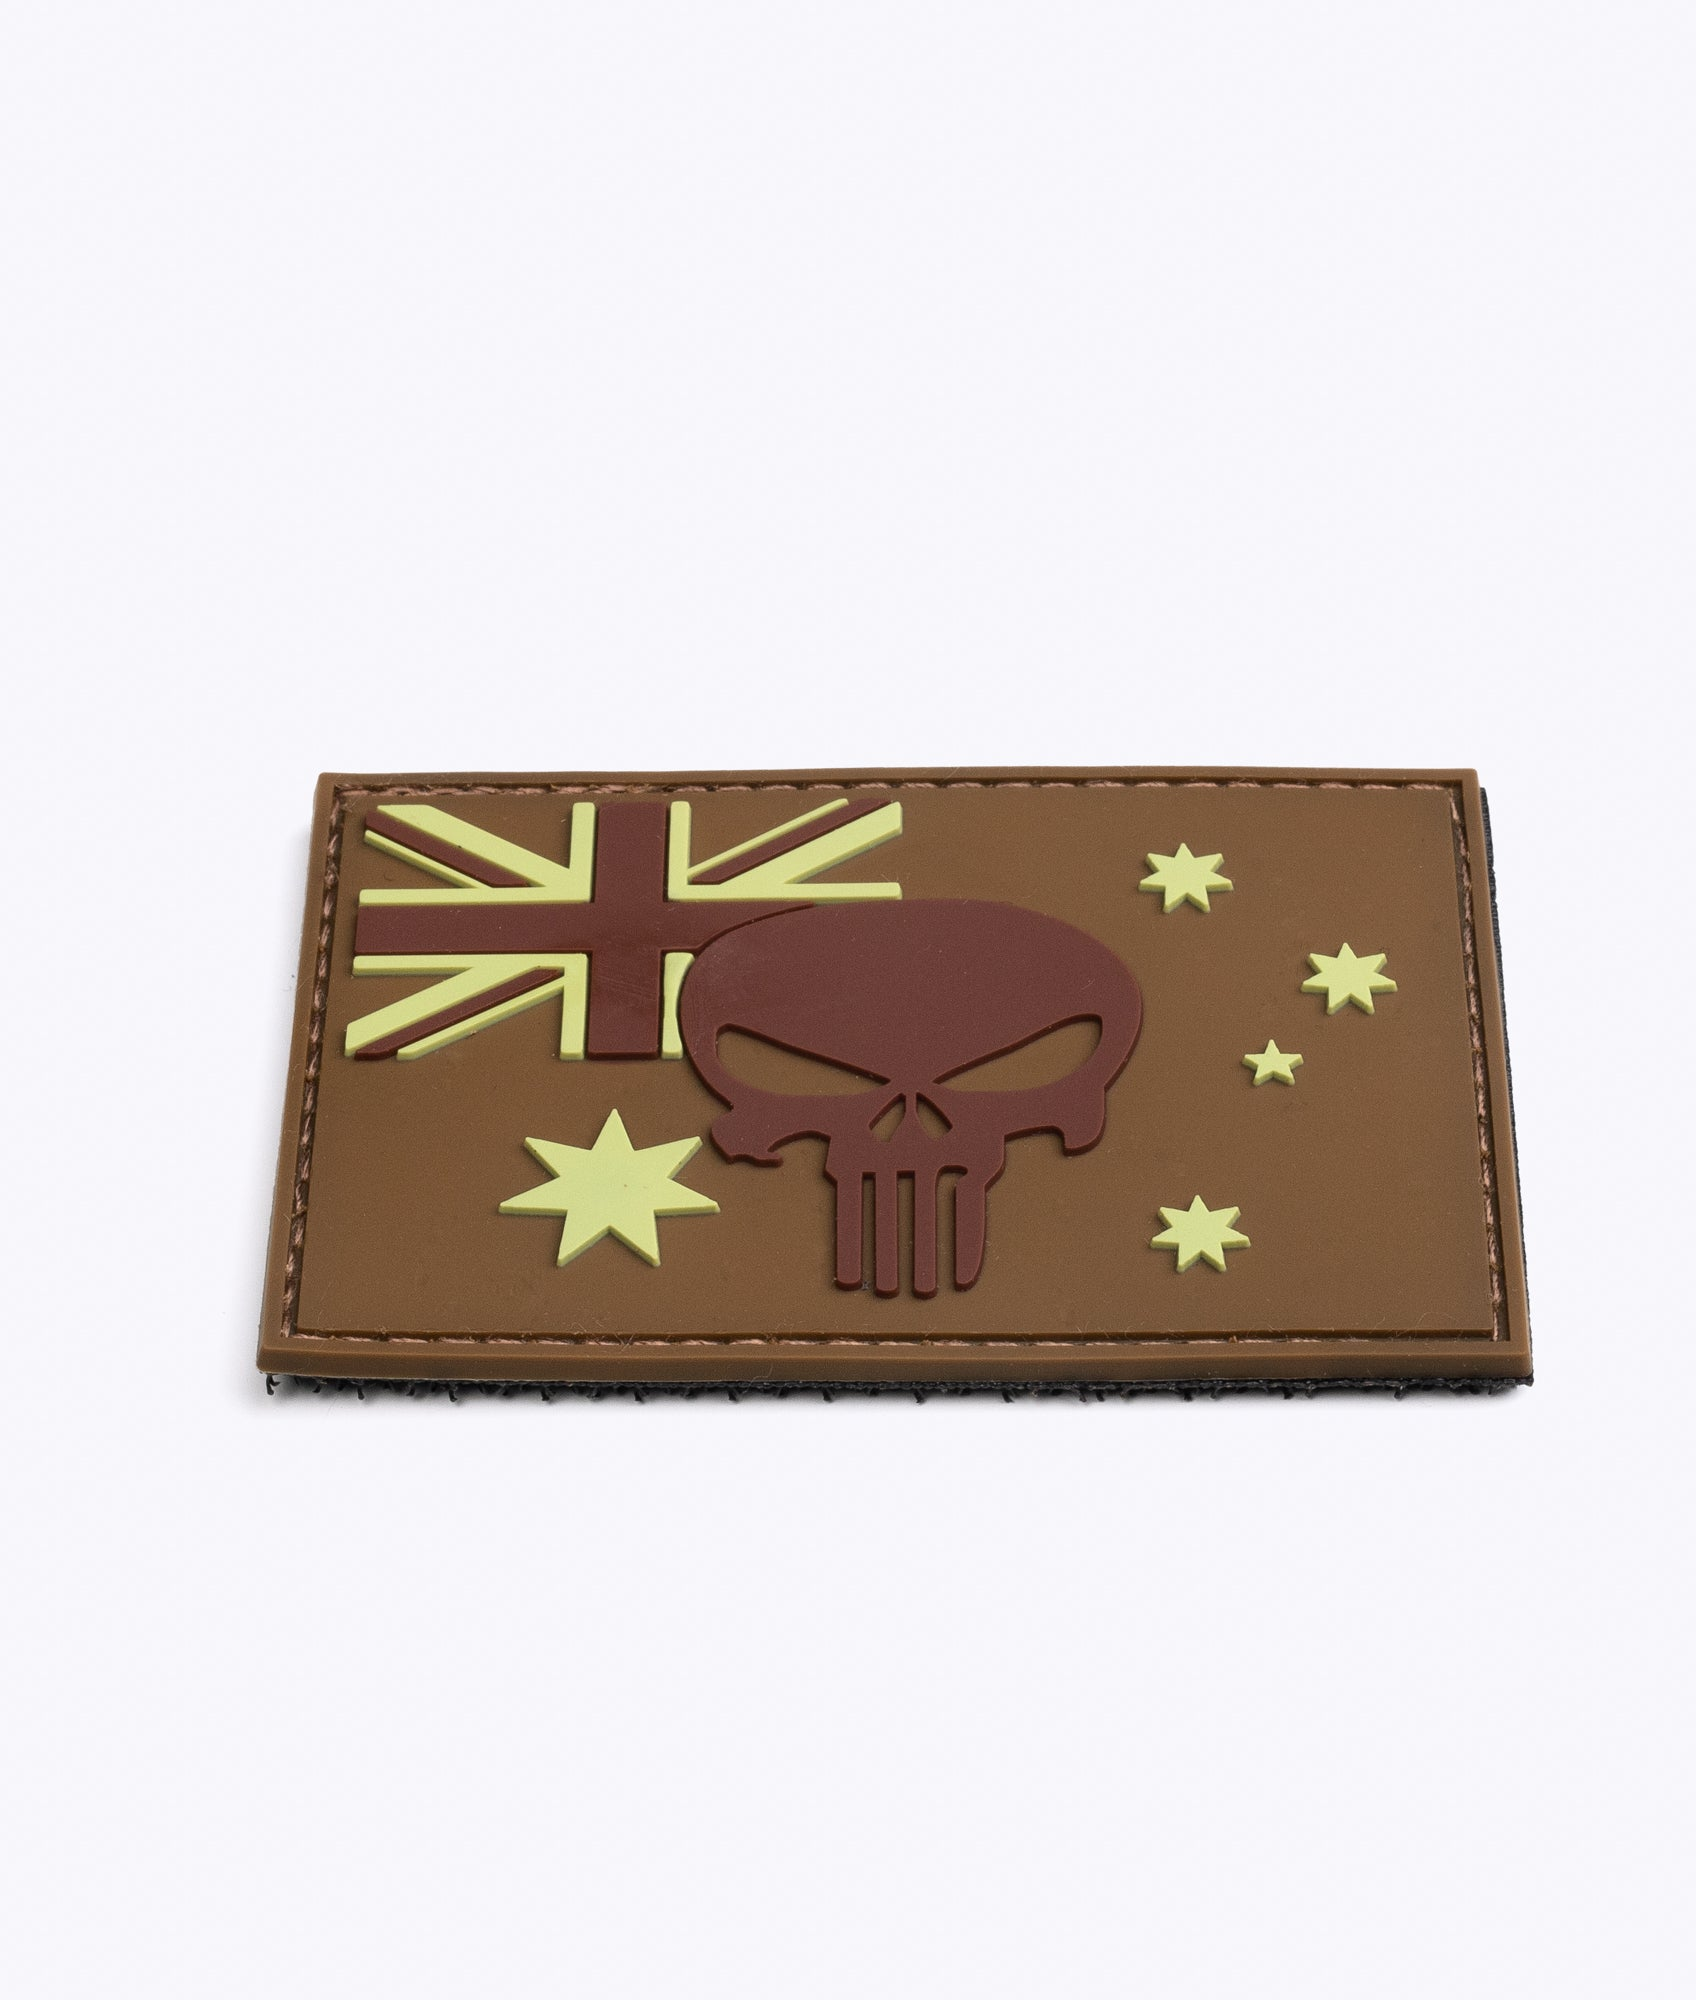 Australian Flag 'Punisher' PVC Patch